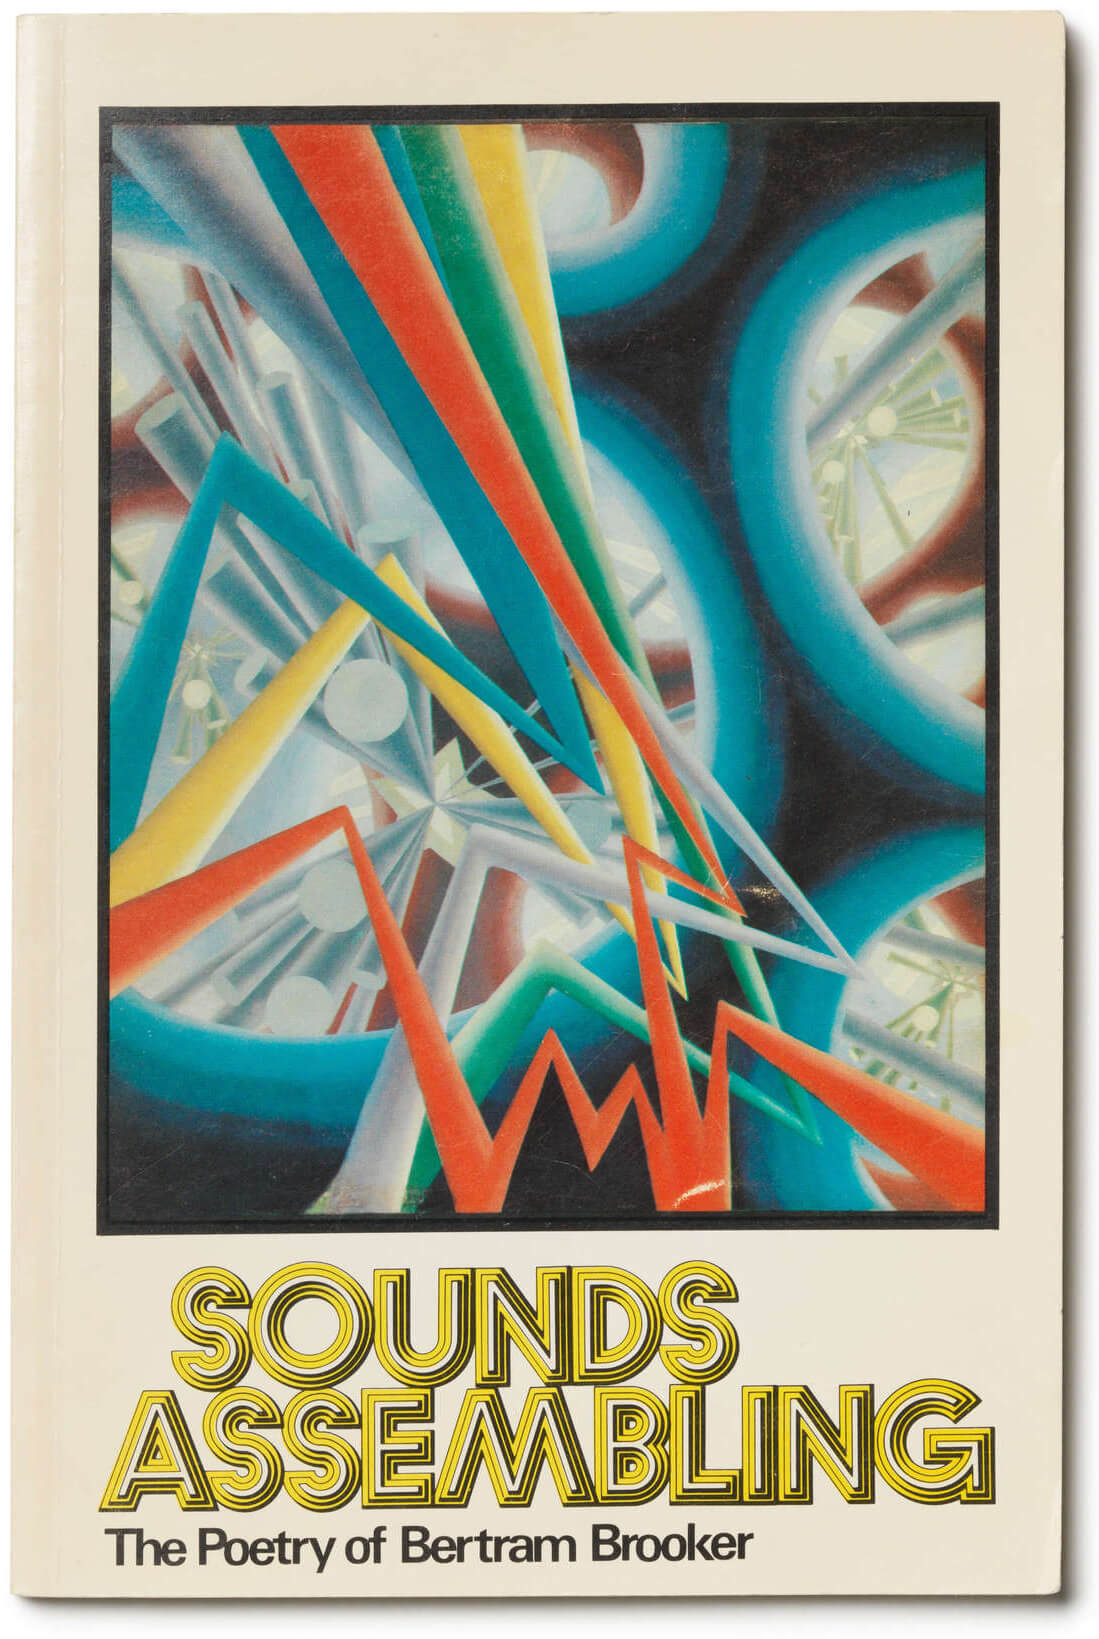 Bertram Brooker, Sounds Assembling: The Poetry of Bertram Brooker